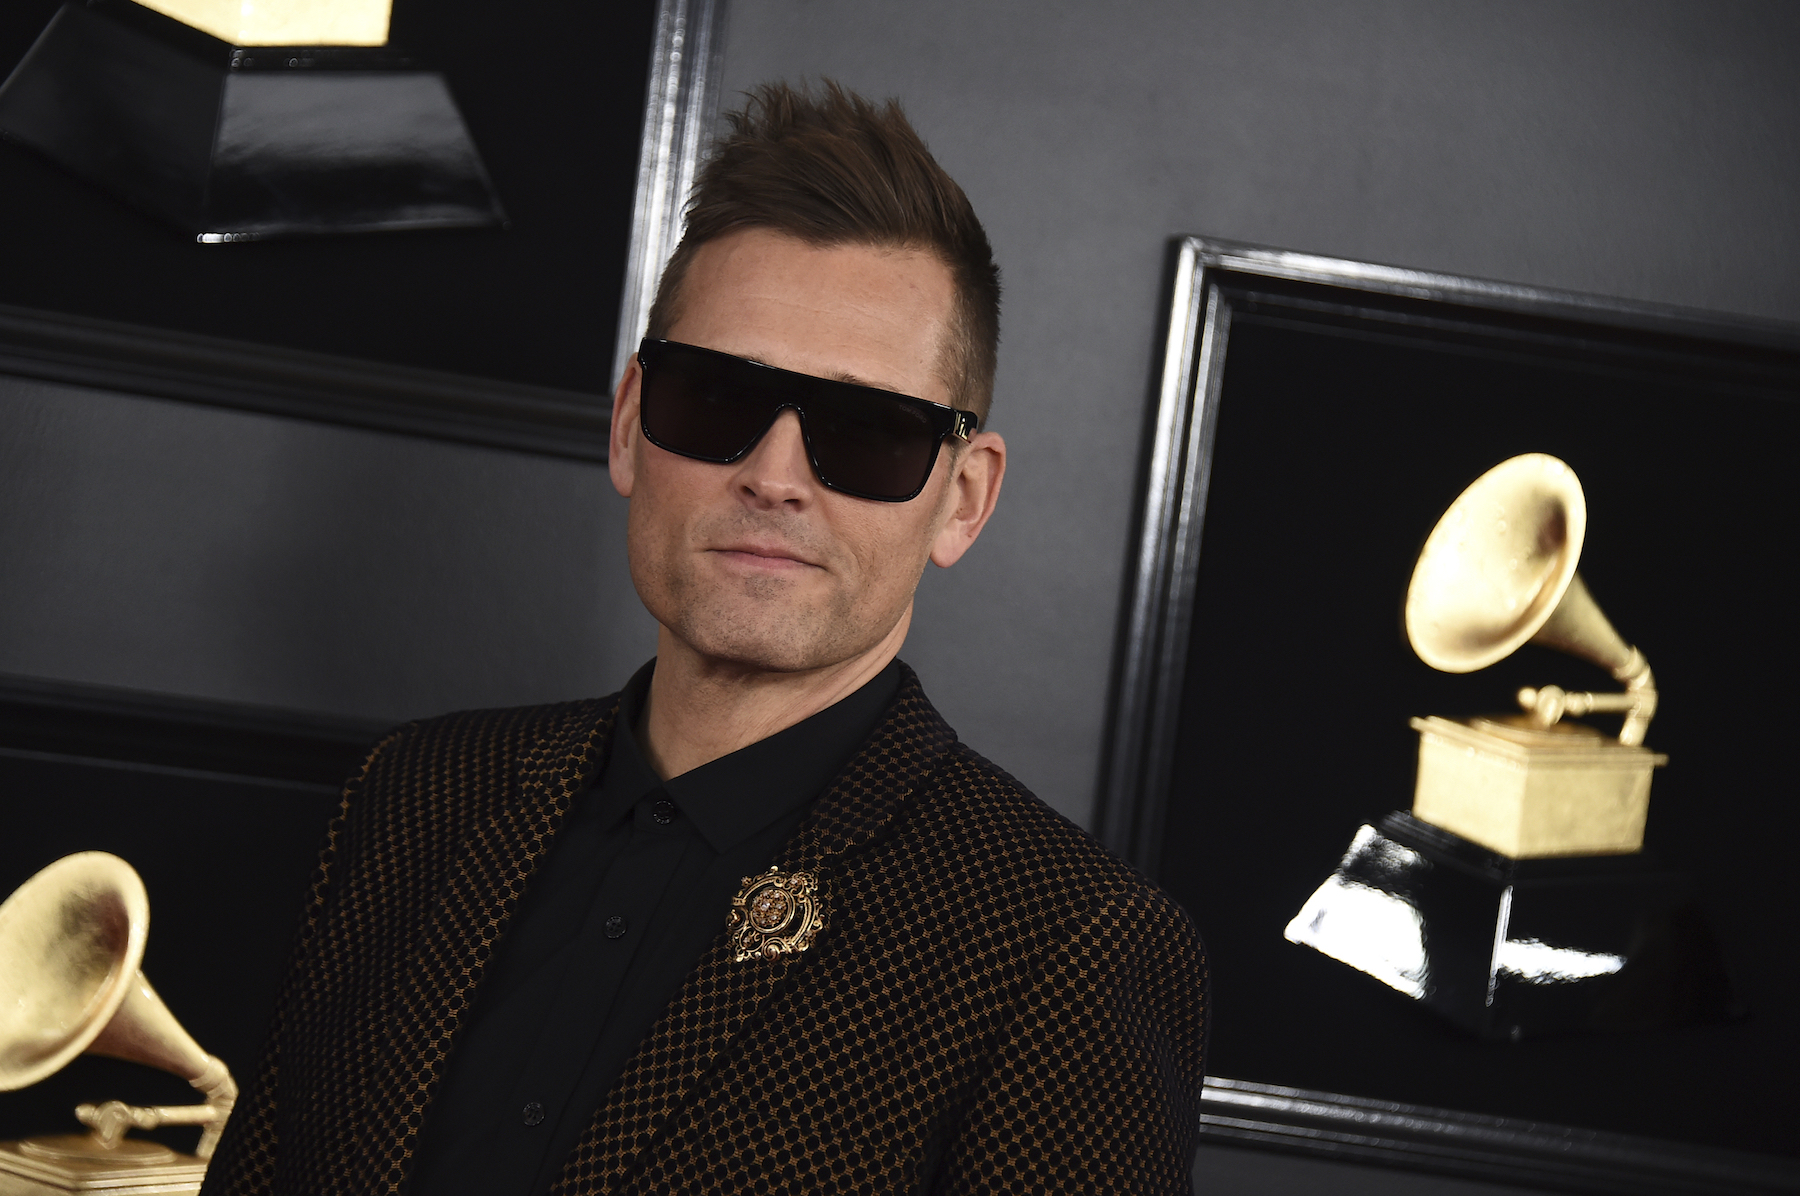 "<div class=""meta image-caption""><div class=""origin-logo origin-image ap""><span>AP</span></div><span class=""caption-text"">Kaskade arrives at the 61st annual Grammy Awards at the Staples Center on Sunday, Feb. 10, 2019, in Los Angeles. (Jordan Strauss/Invision/AP)</span></div>"